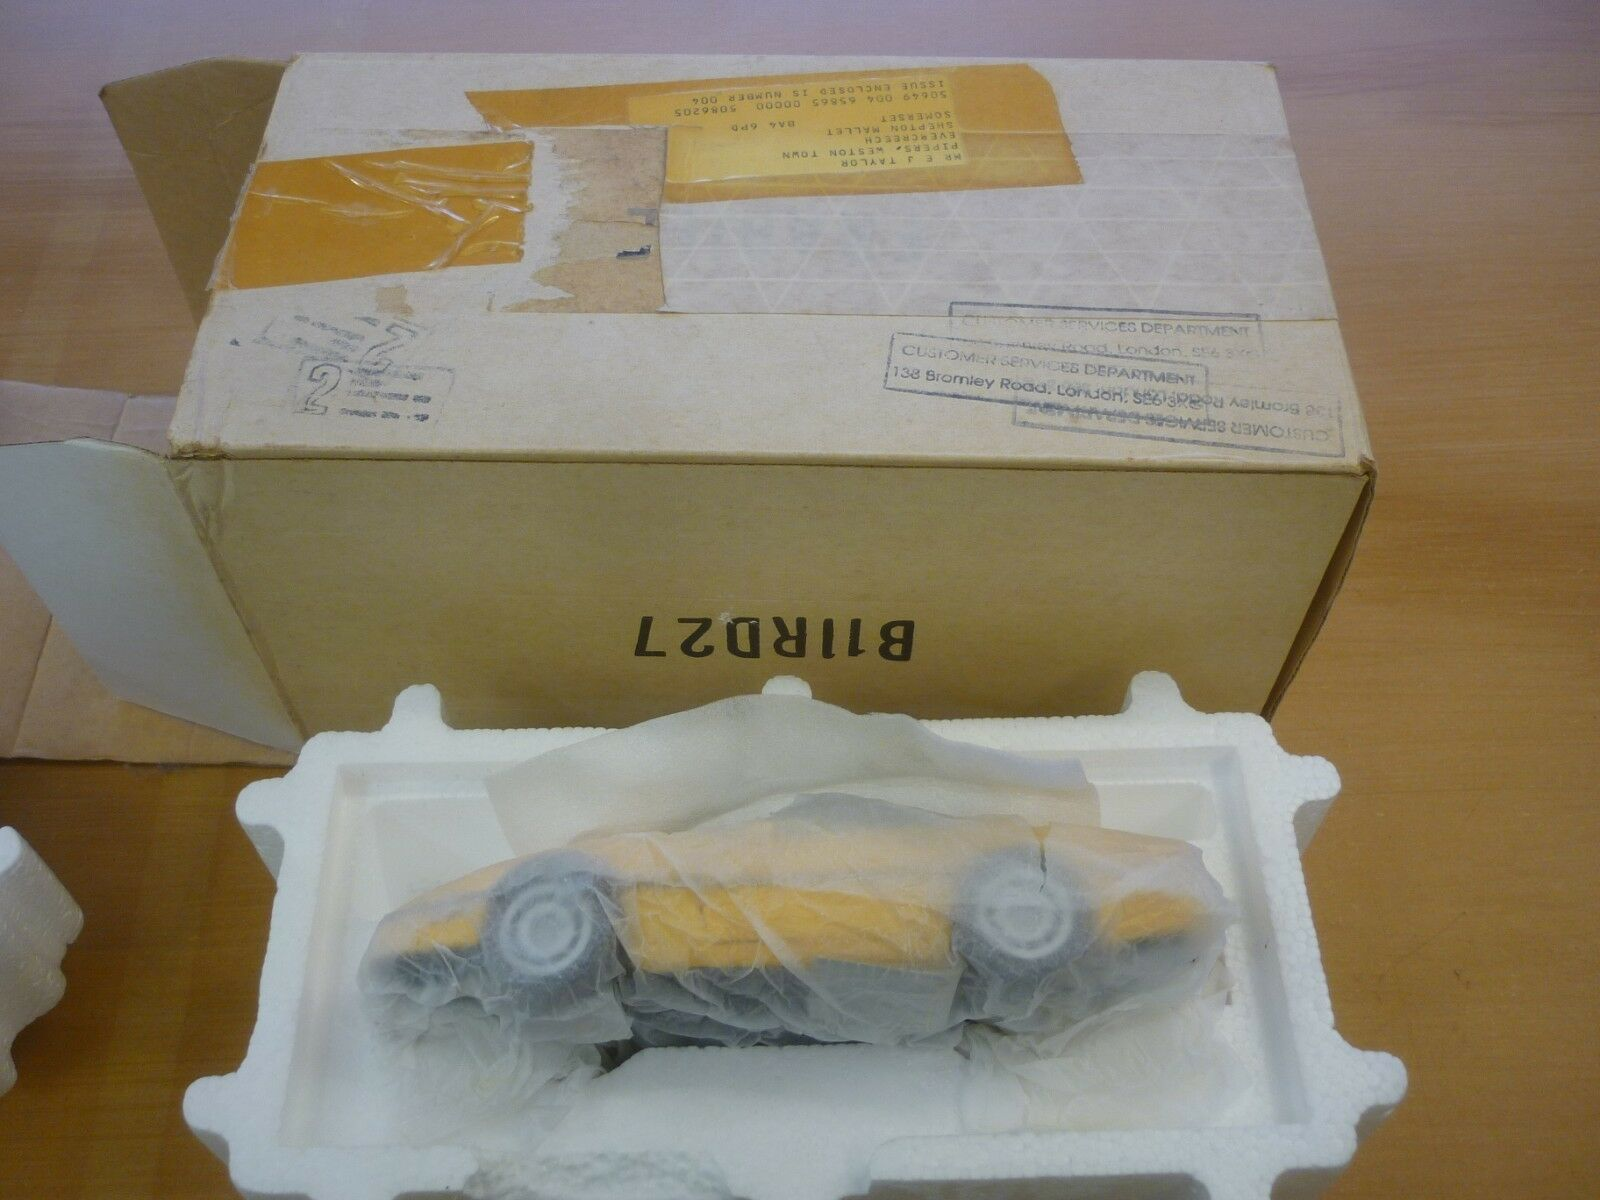 A Franklin mint of a scale Modelll of a 1986 Chevrolet corvette, Boxed, paperwork